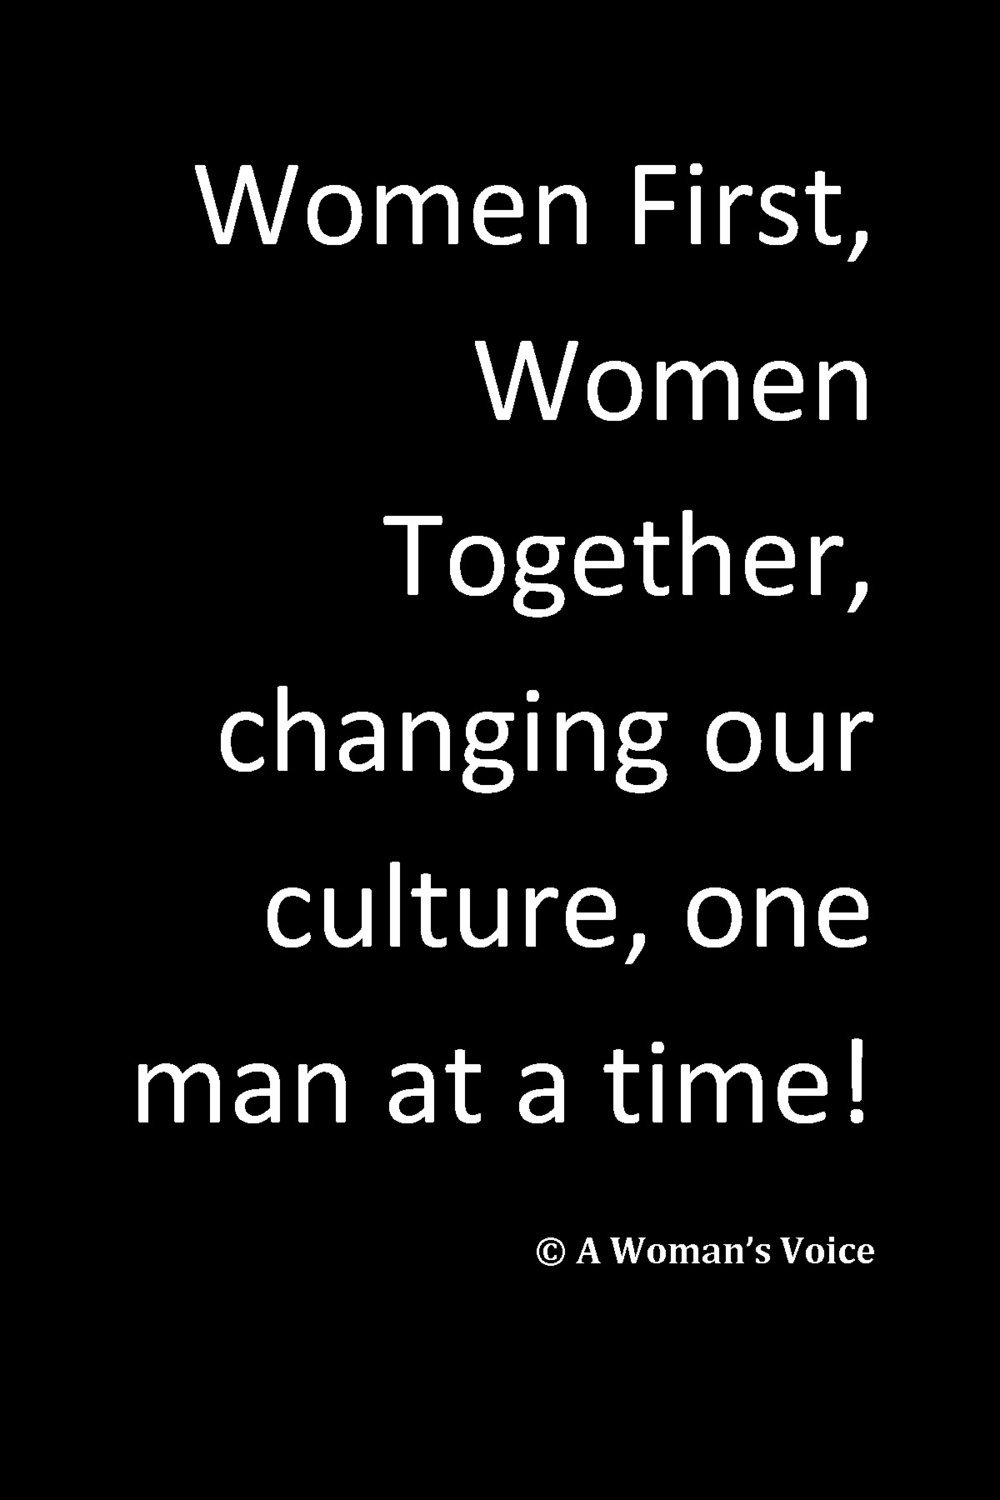 Women first changing our culture one man at a time.jpg